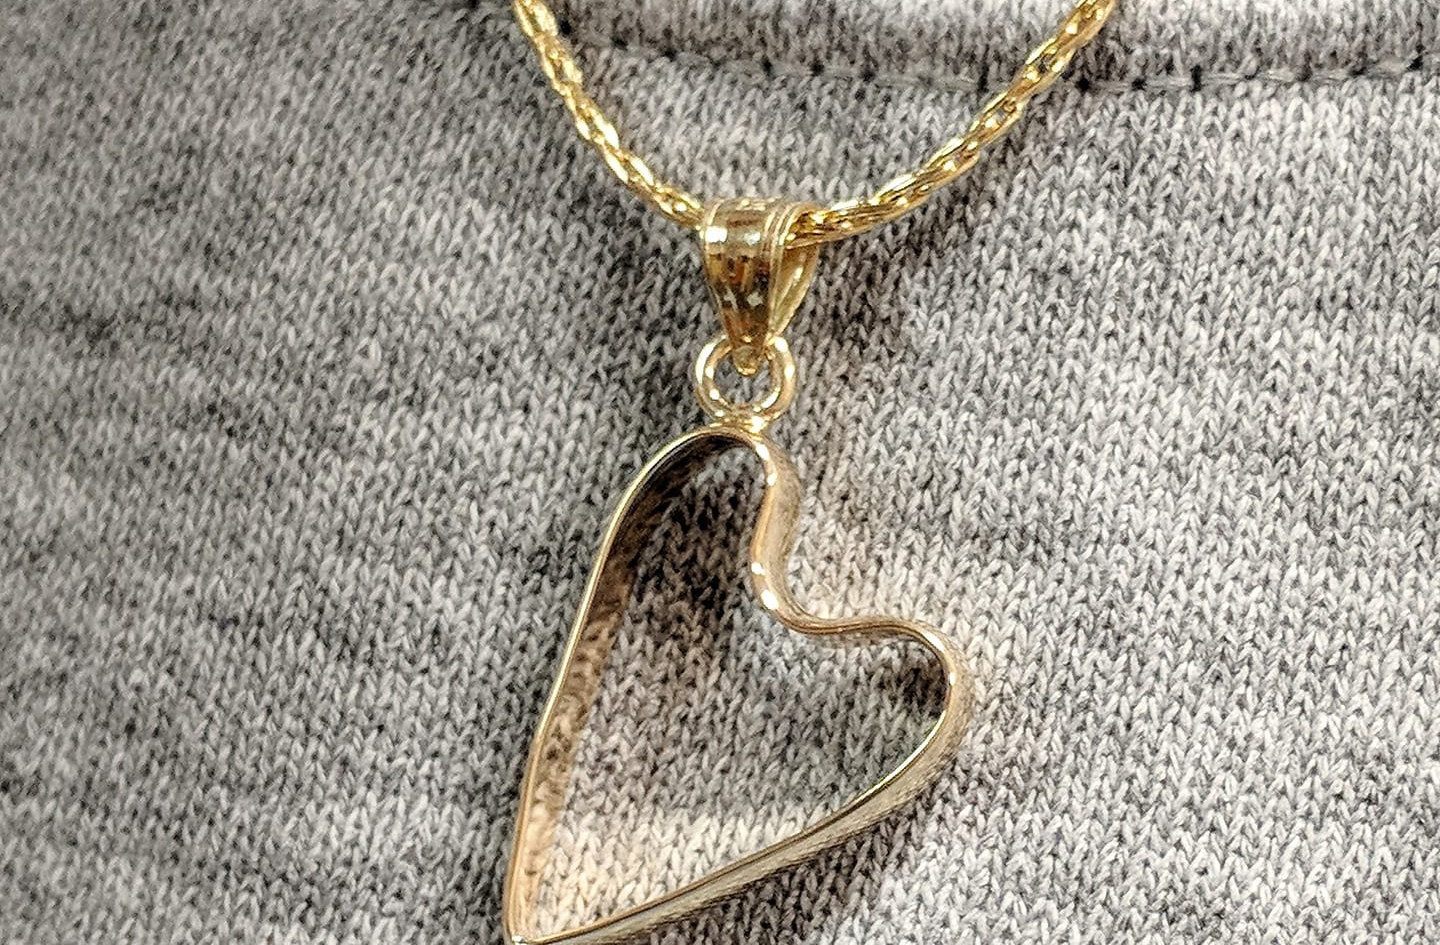 Sadly a customers husband passed away and she wanted a way to wear to his ring without having to take anything away from it. Harry came up with the idea of reshaping it into a heart and adding a bail to create a pendant. The customer absolutely loved it and now has a piece of her husband with her always.